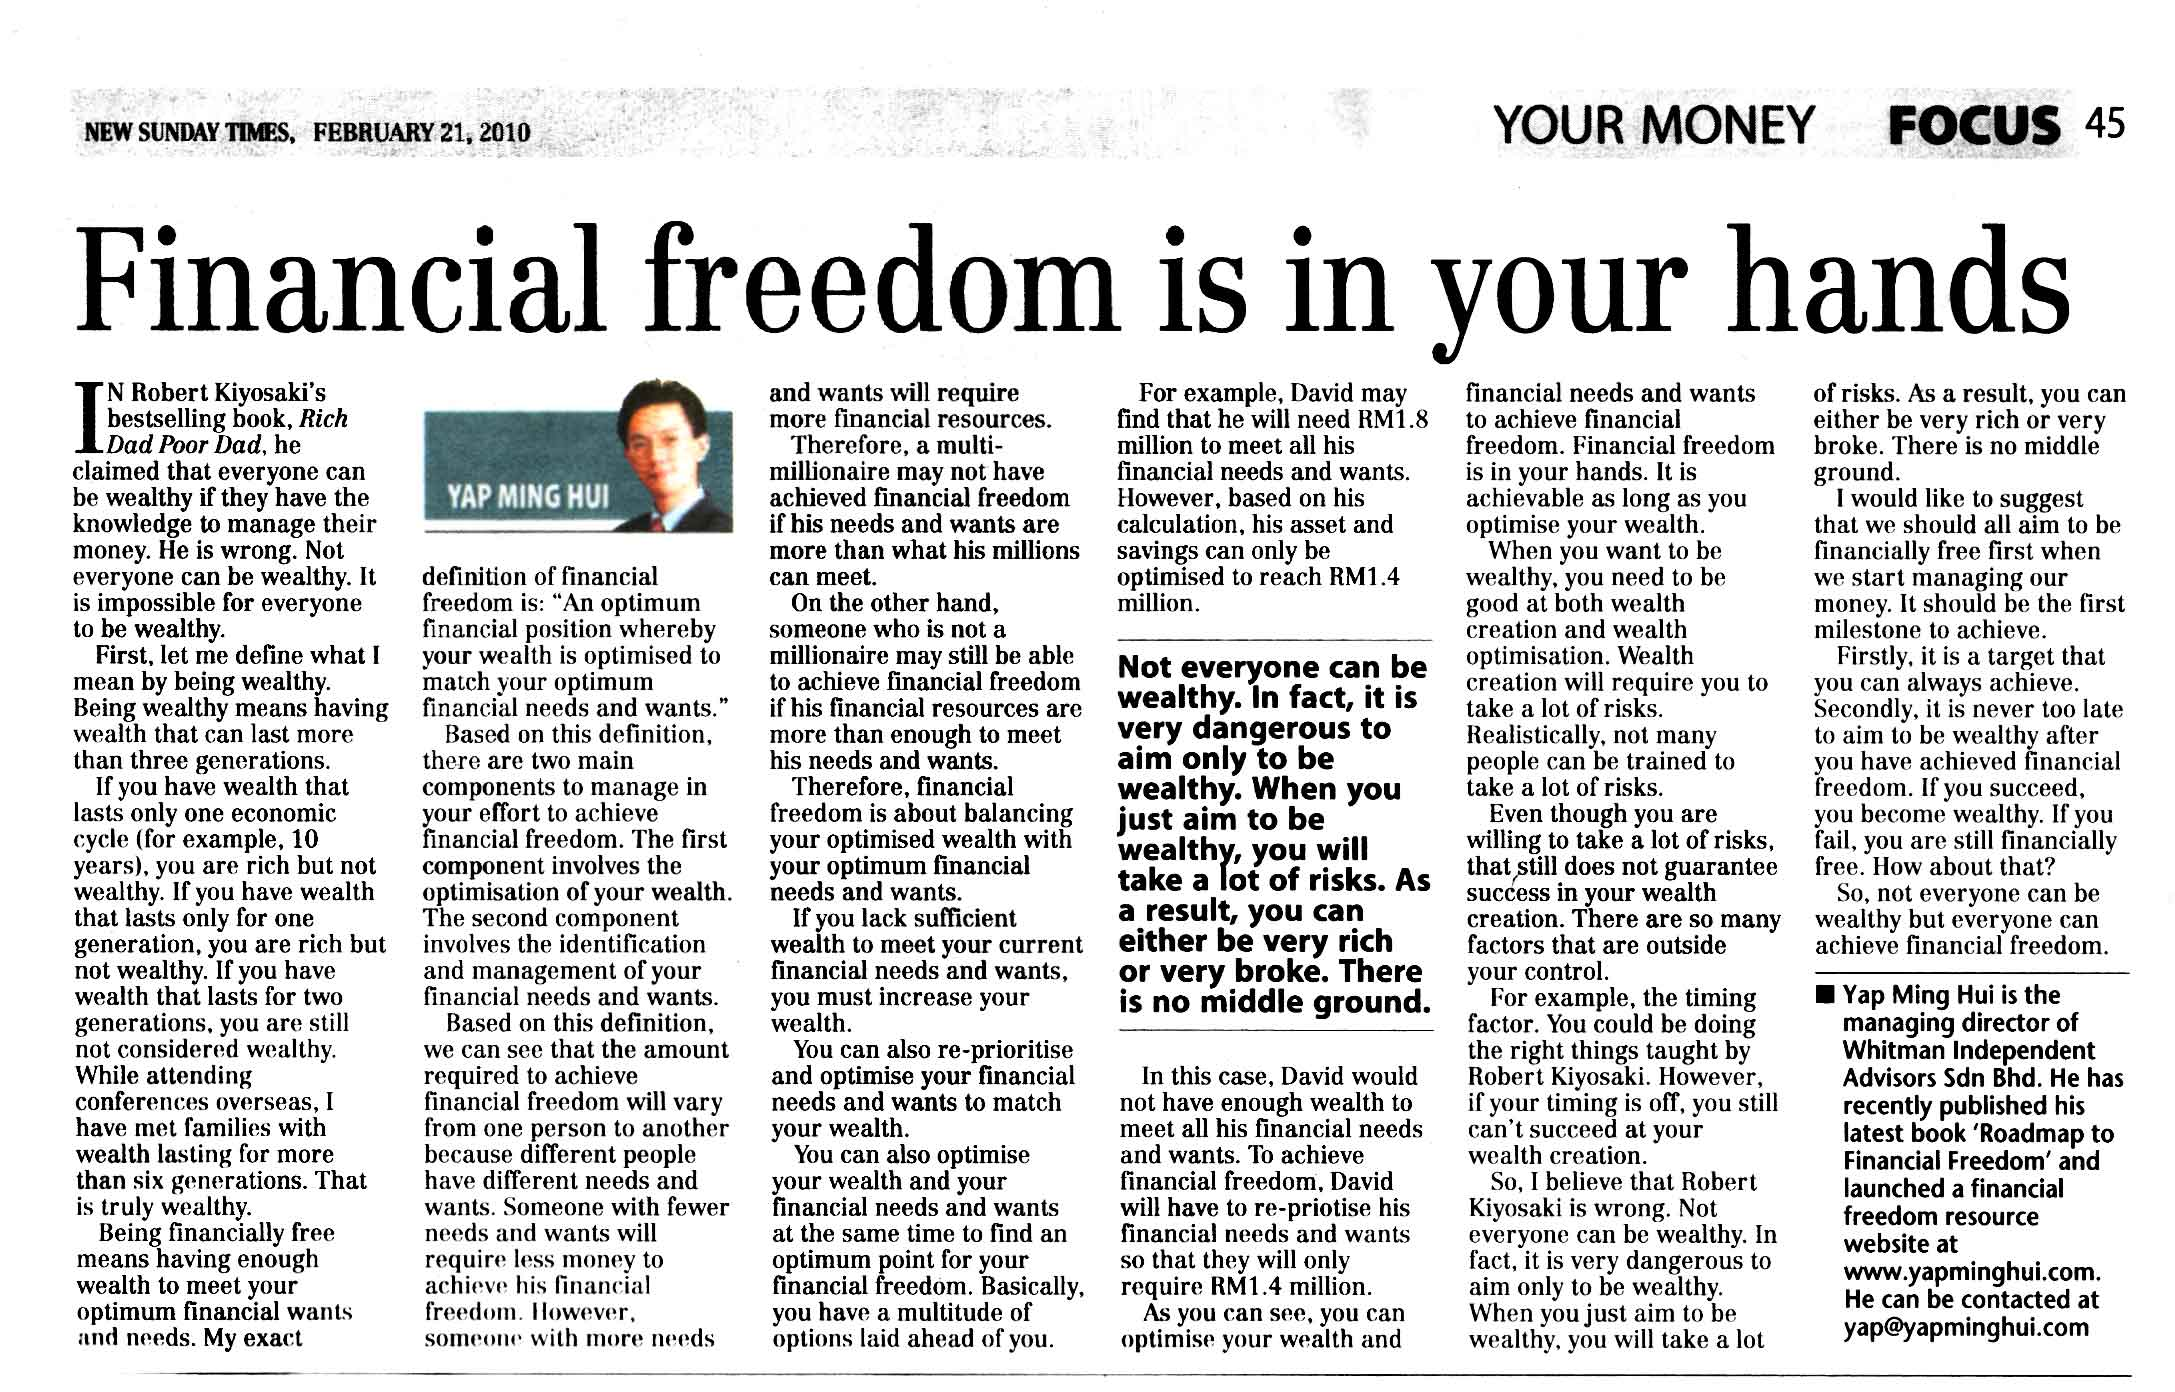 Financial freedom is in your hands (New Sunday Times) - 21 Feb 2010